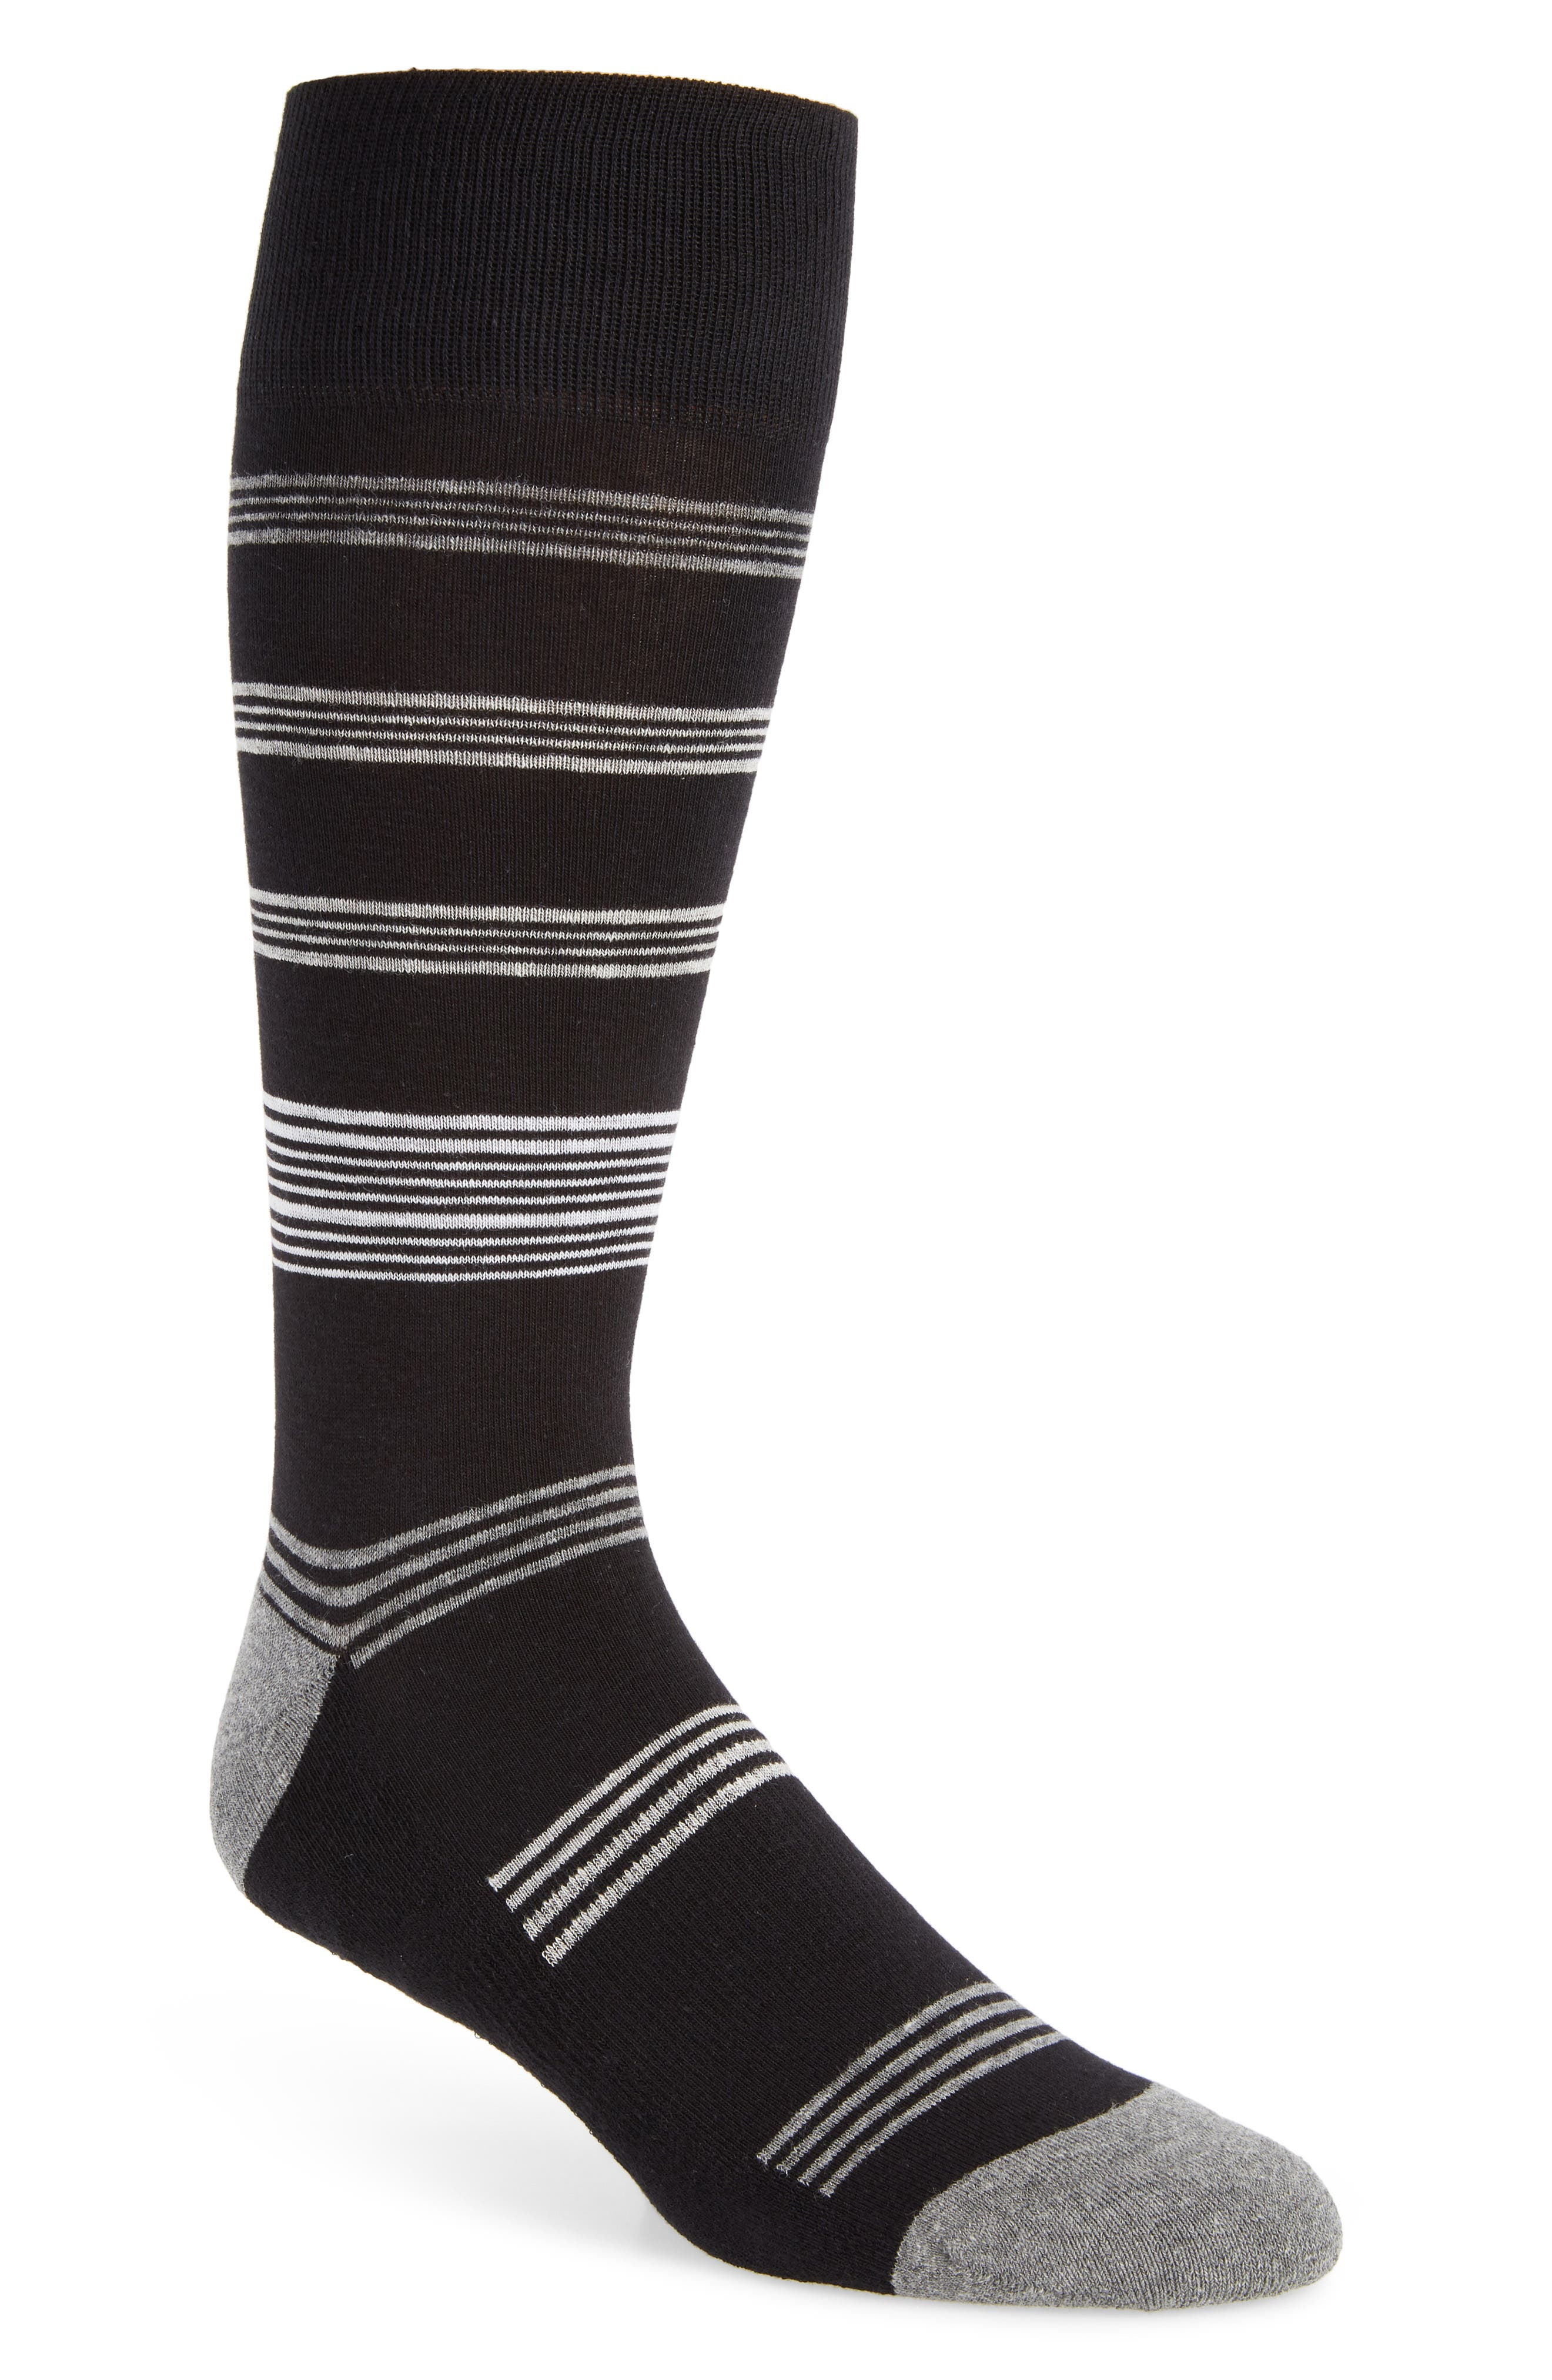 Stripe Socks,                         Main,                         color, BLACK/ GREY